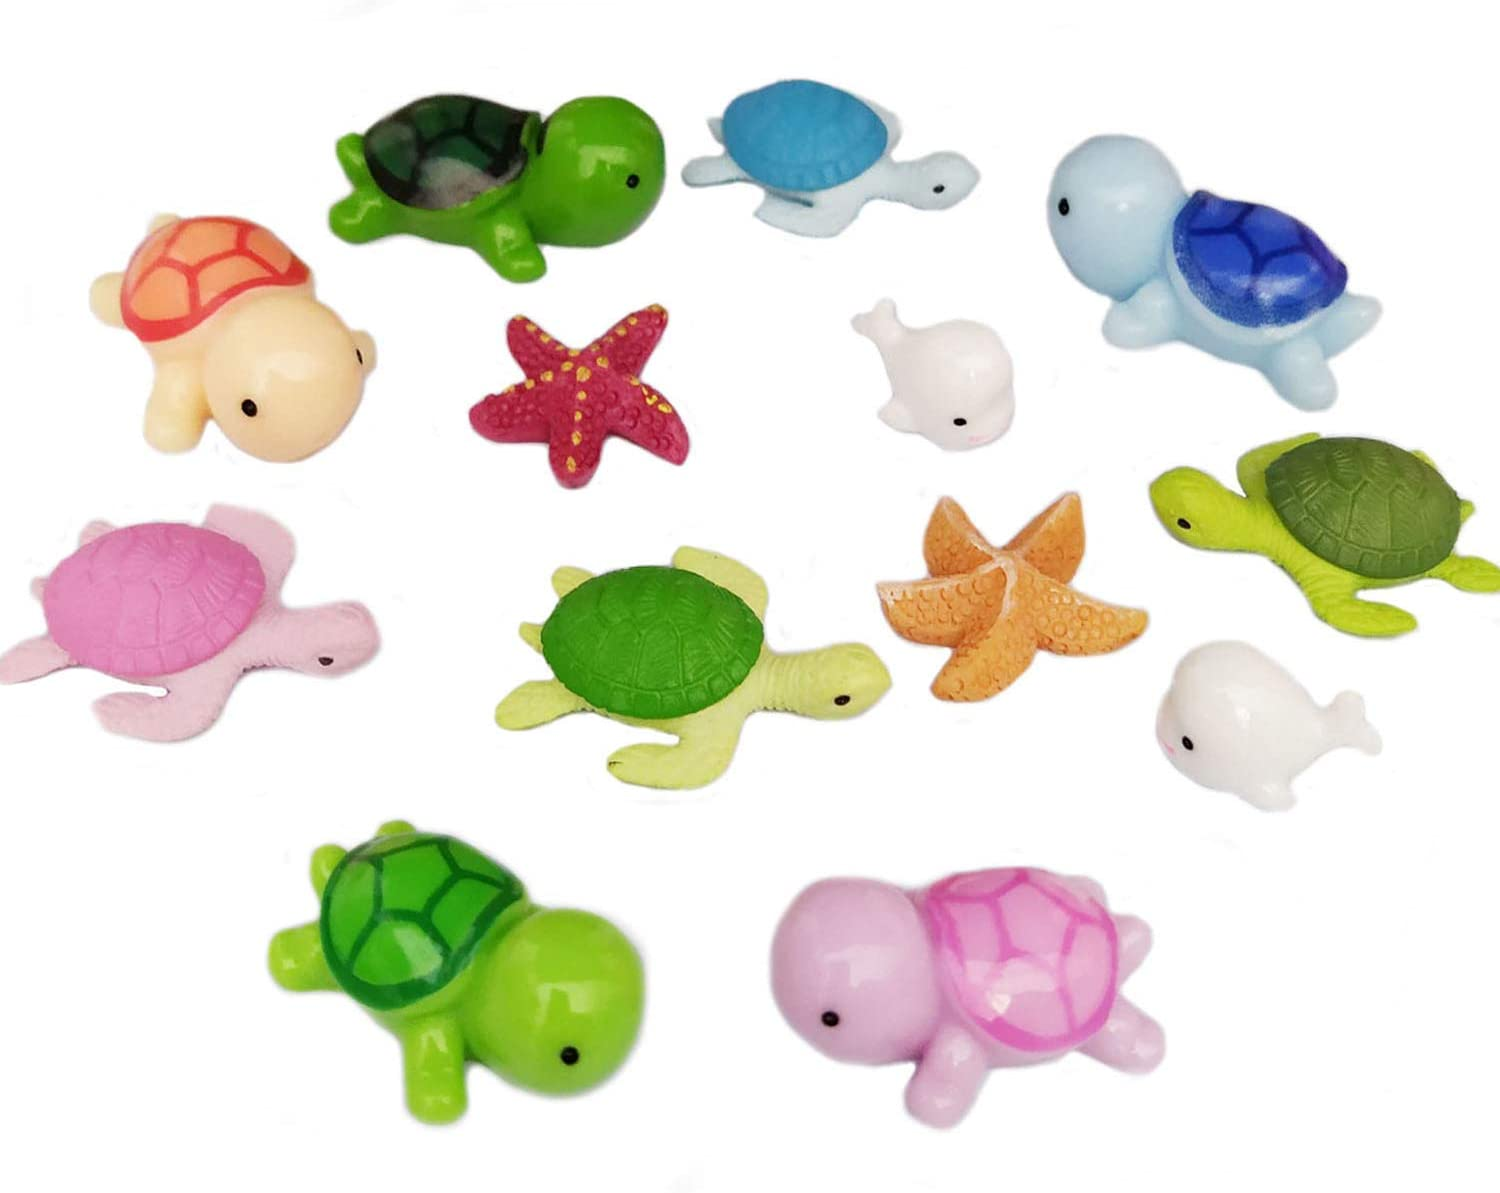 Ruzucoda Miniature Sea Turtle Dolphin Starfish Ocean Animal Figurines Ornaments Fairy Garden Office Decor Fish Tank Decorations 13 PCS